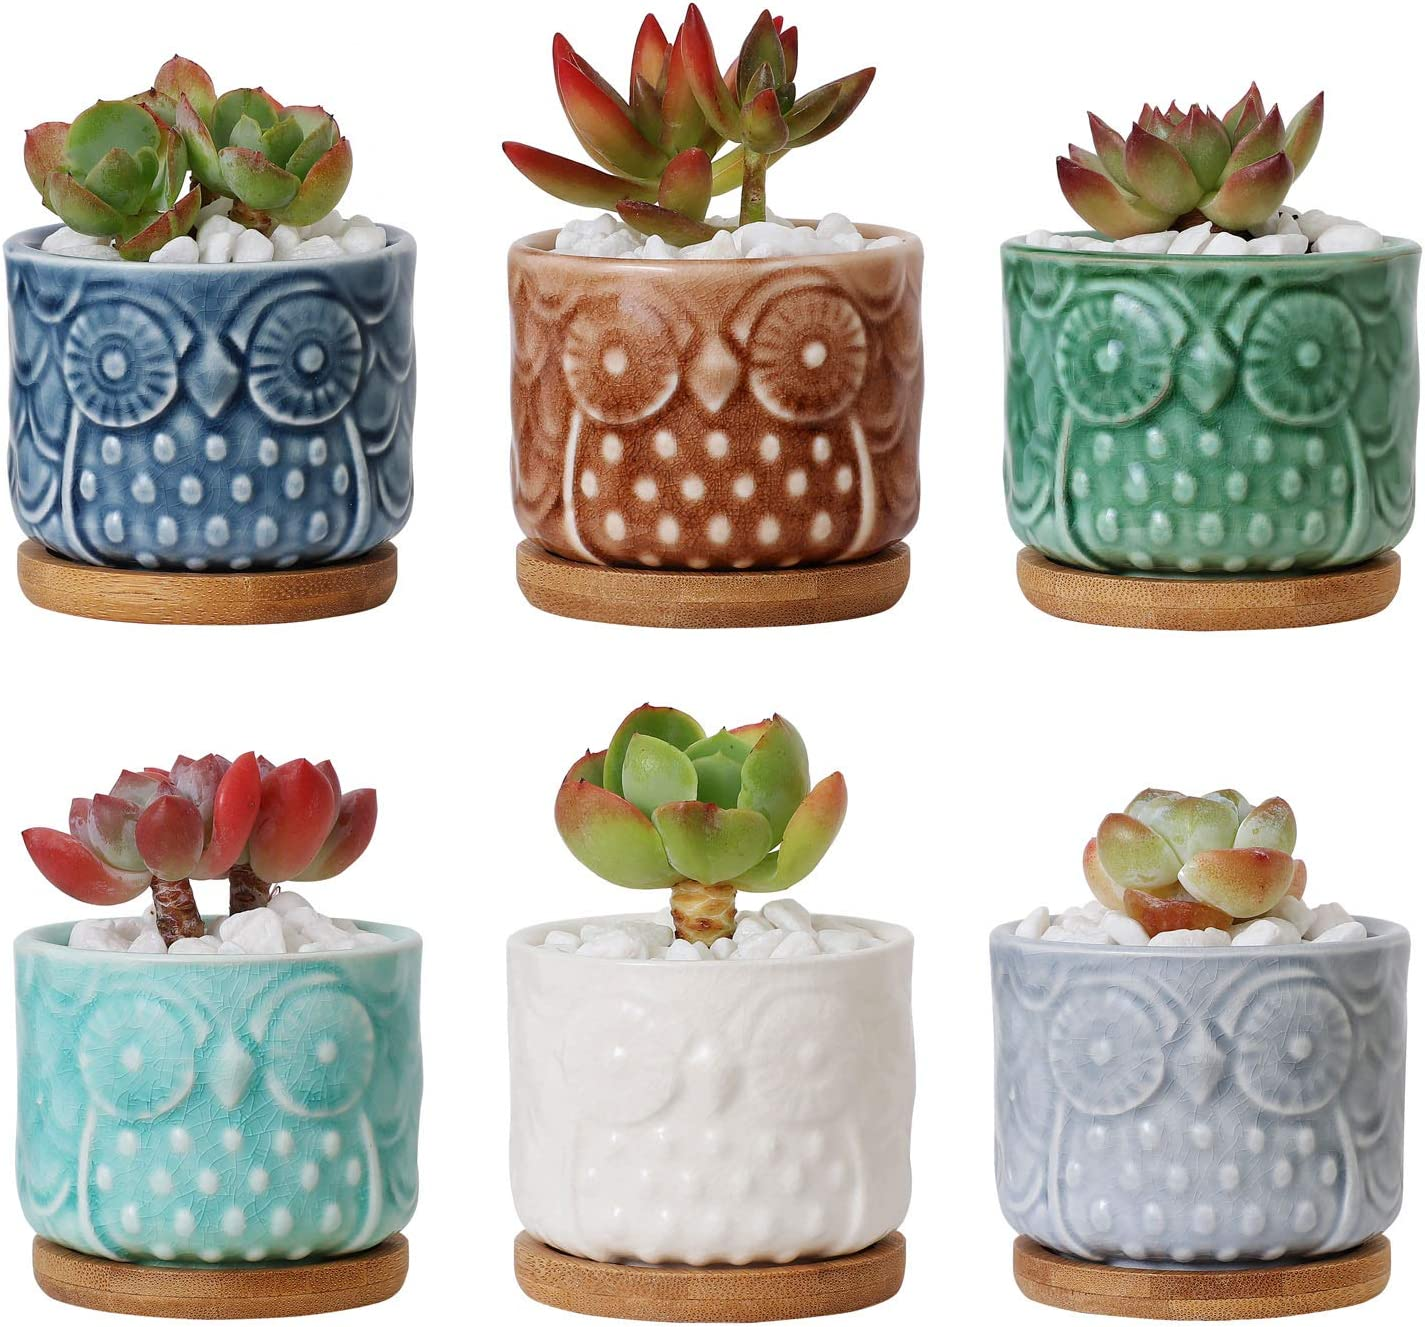 T4U 2.6 Inch Ceramic Owl Succulent Cactus Planter Pot Set with Bamboo Tray Full Color Set of 6, Home and Office Decoration Desktop Windowsill Bonsai Pots Gift for Gardener Wedding Birthday Christmas